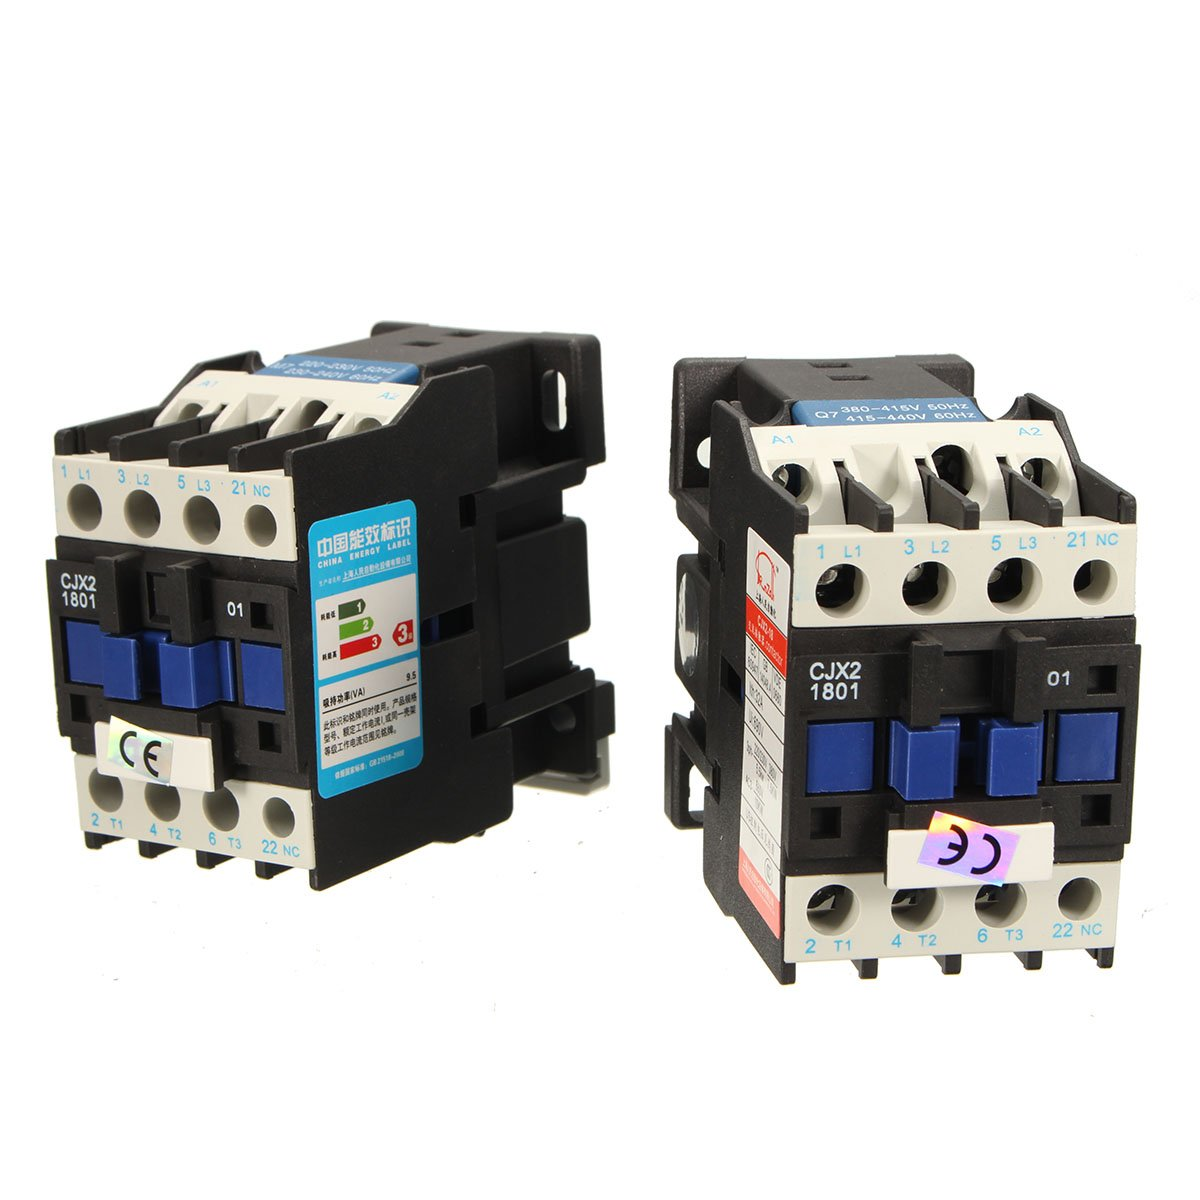 CJX2-1801 AC /380V 18A Contactor Motor Starter Relay 3 POLE+1NC COIL 4KW 7.5KW by SPK603